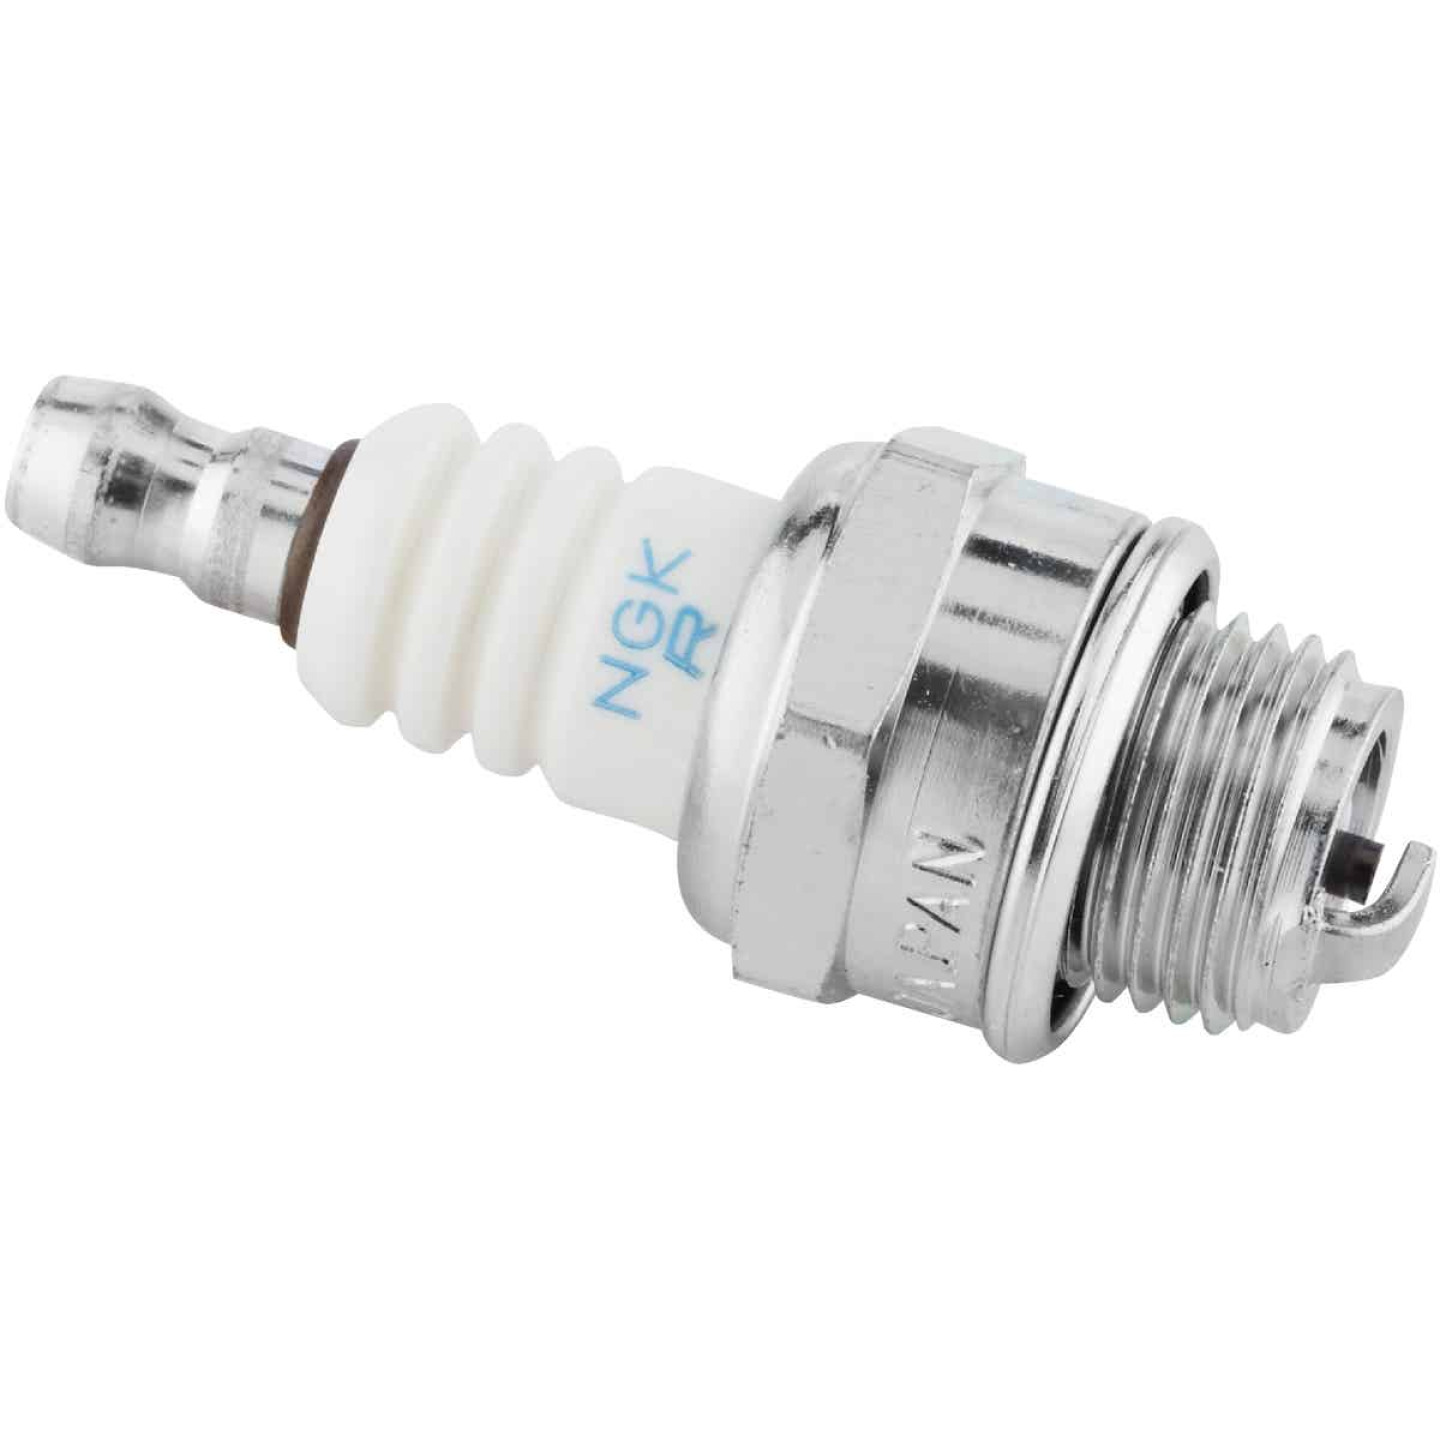 NGK BMR6A BLYB Lawn and Garden Spark Plug Image 1